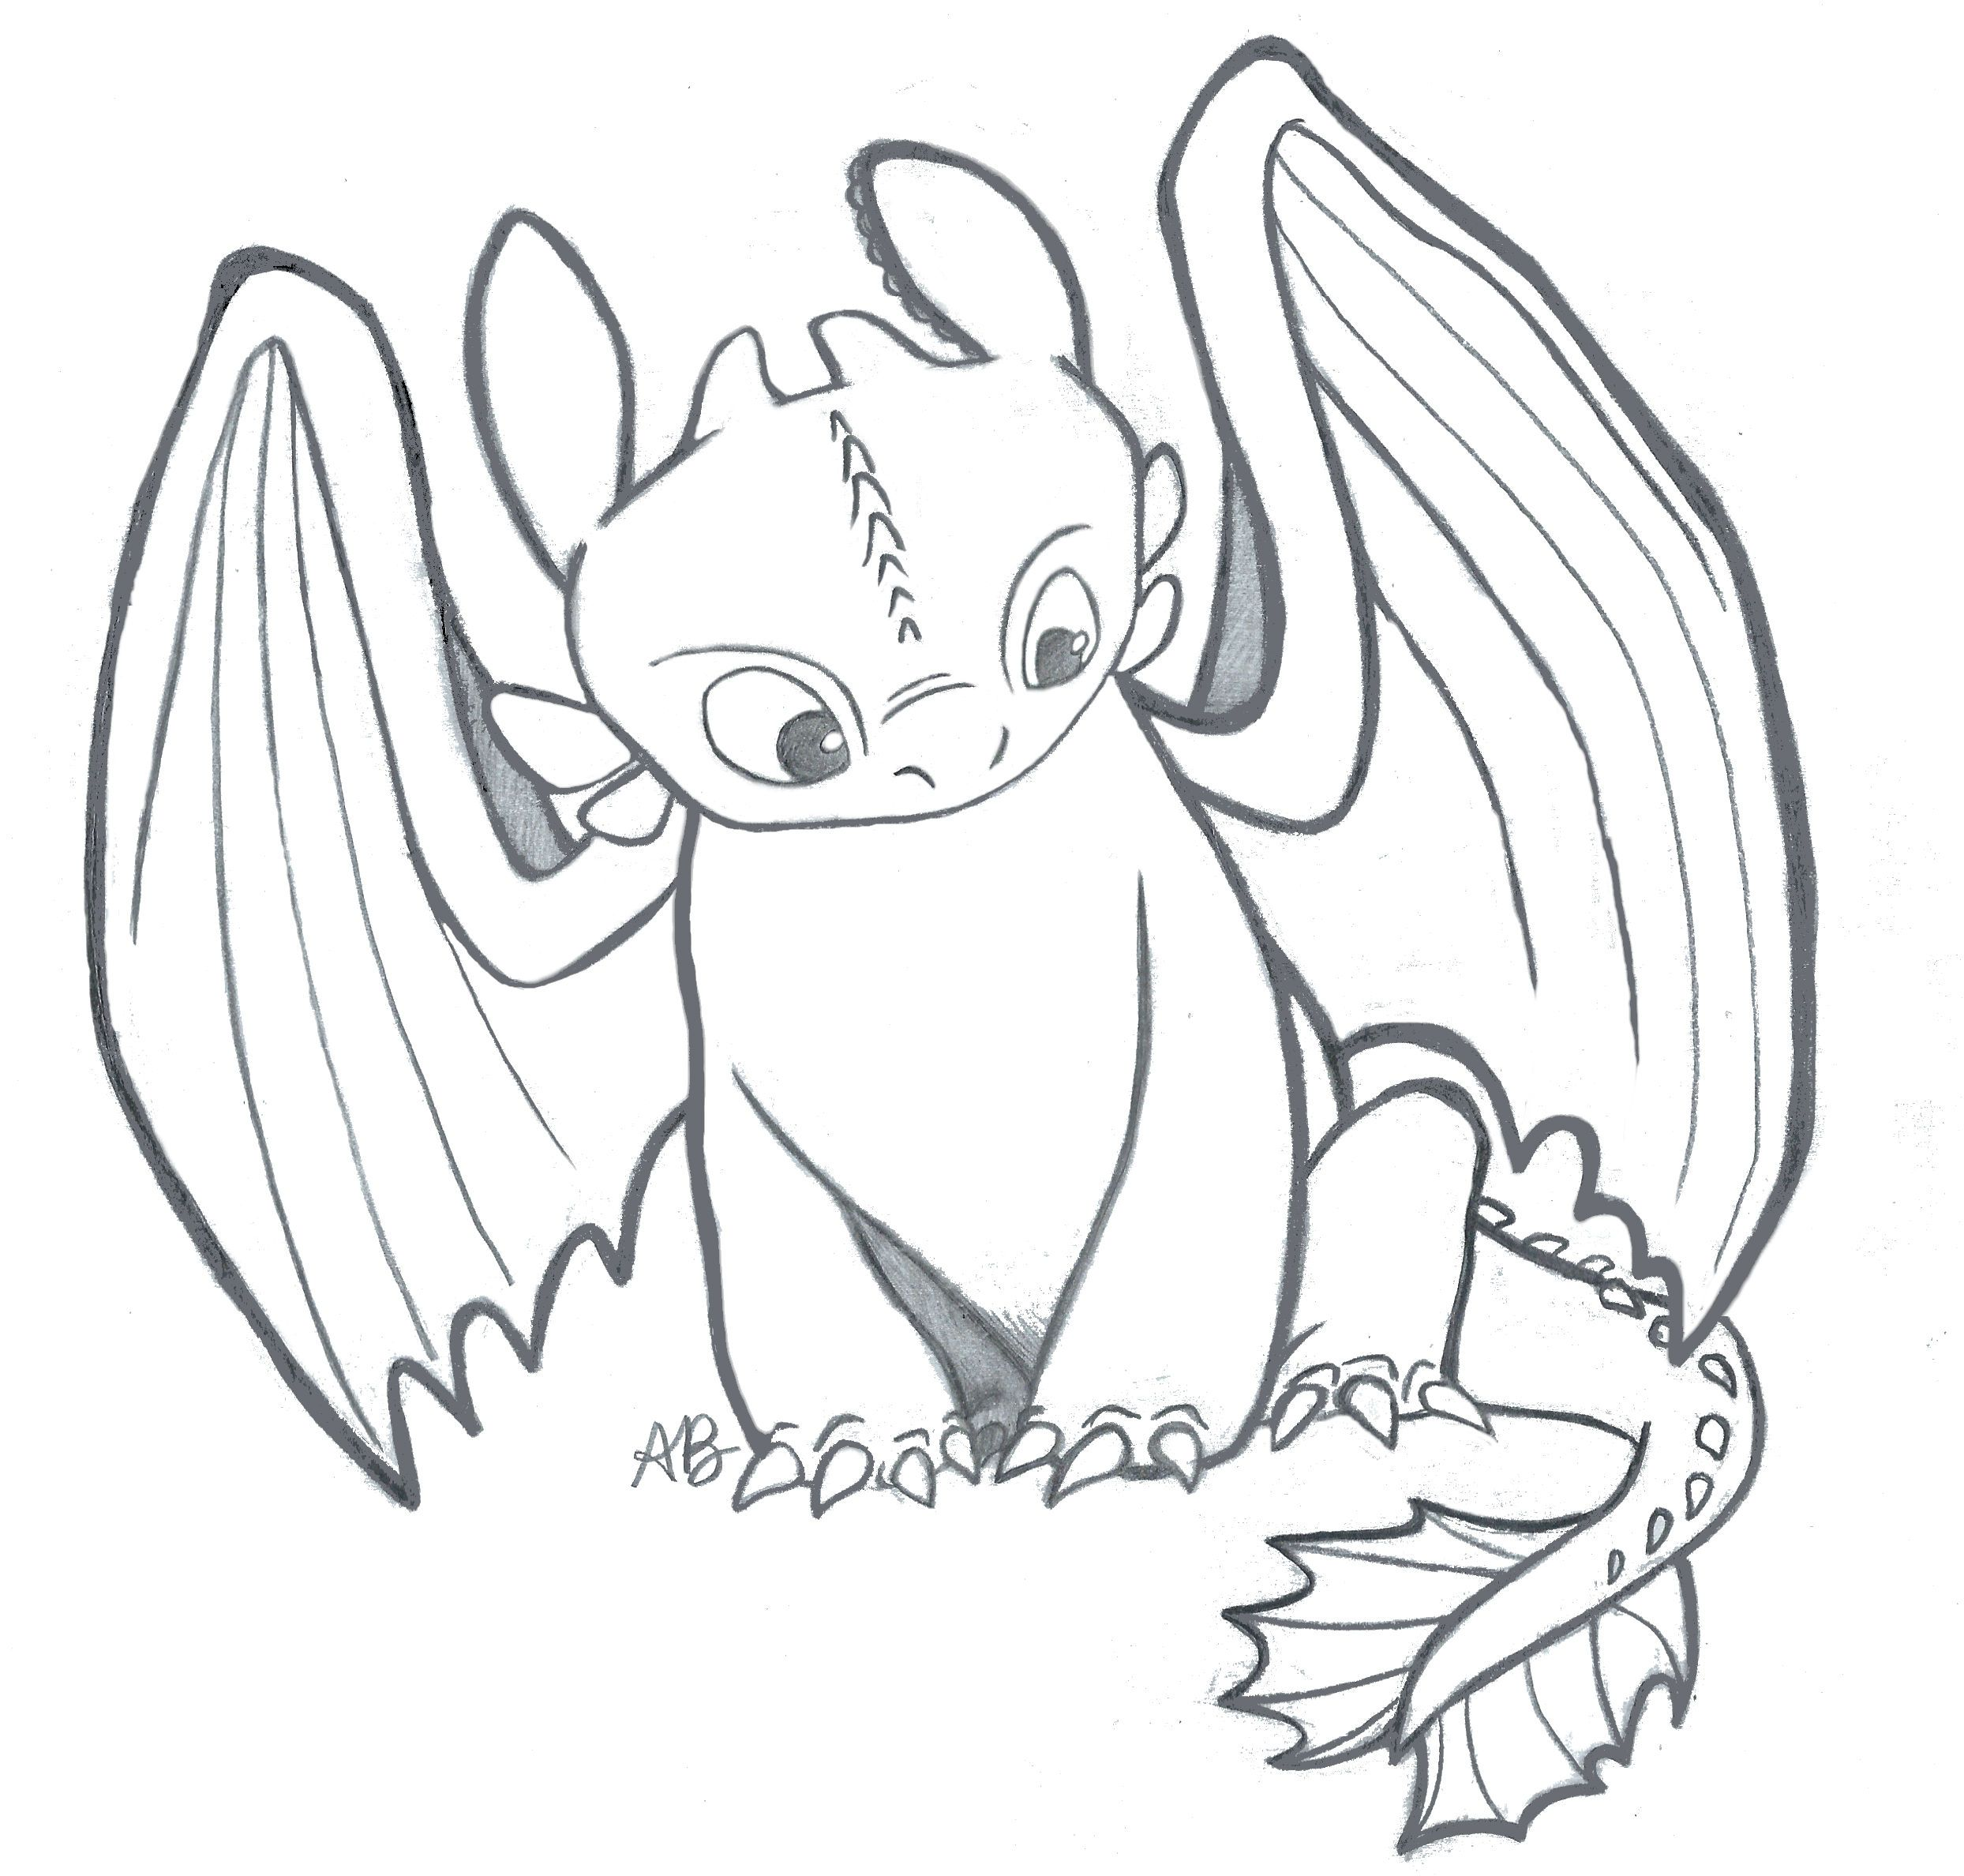 I Drew This Sketch Of Toothless From How To Train Your